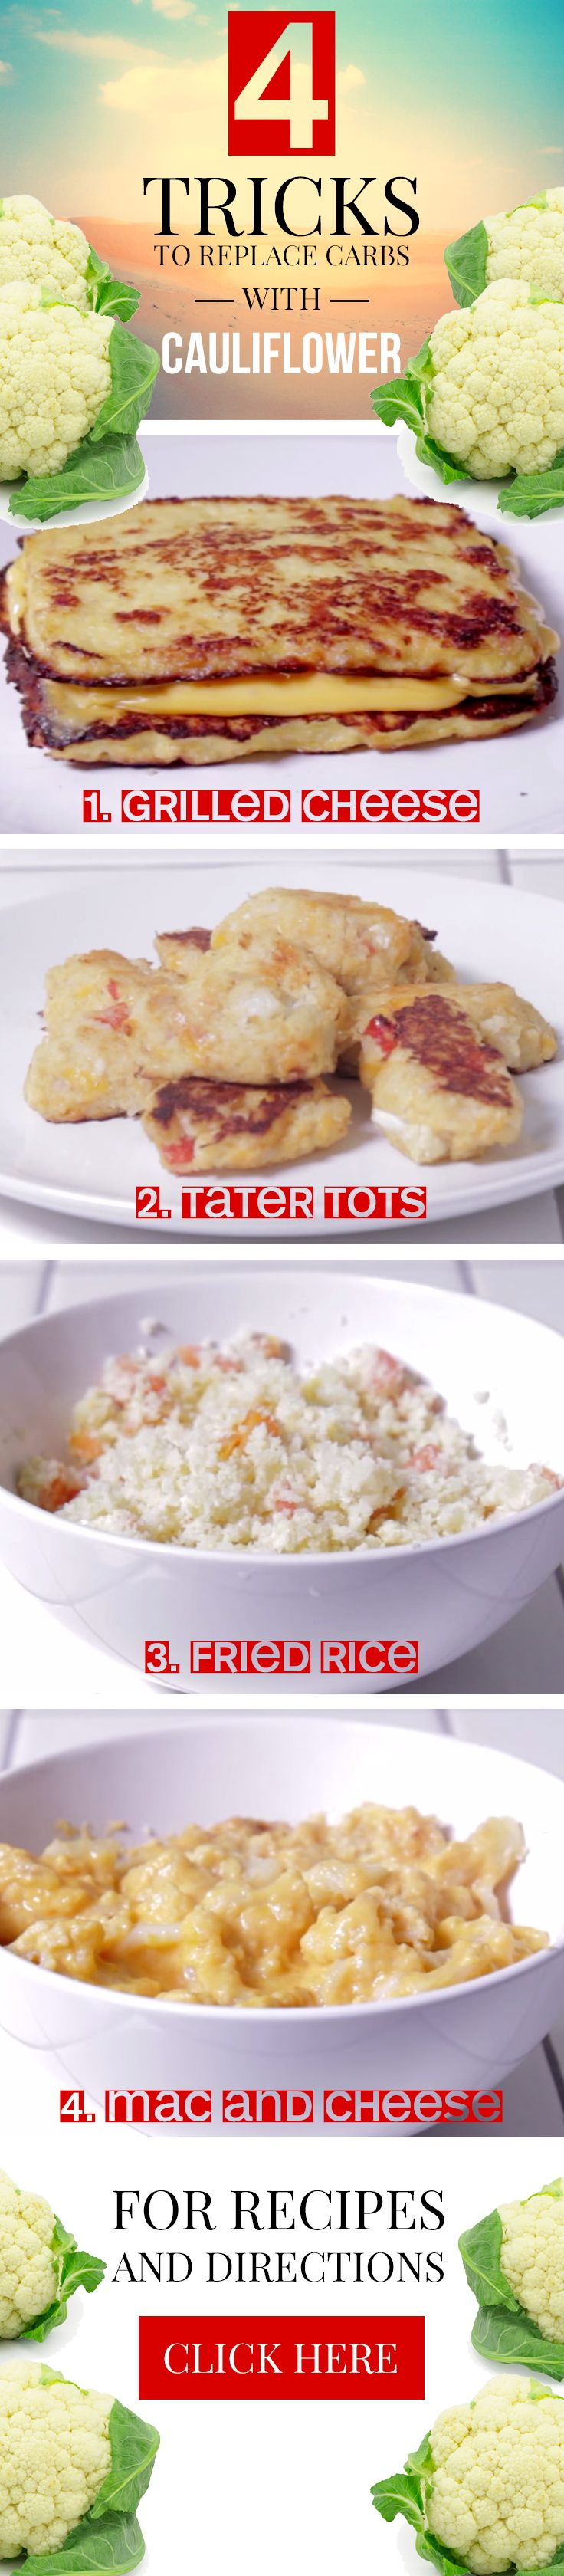 These 4 unbelievable Cauliflower Recipes are perfect if you are trying to replace carbs with cauliflower or look for new ways for how to cook with cauliflower.